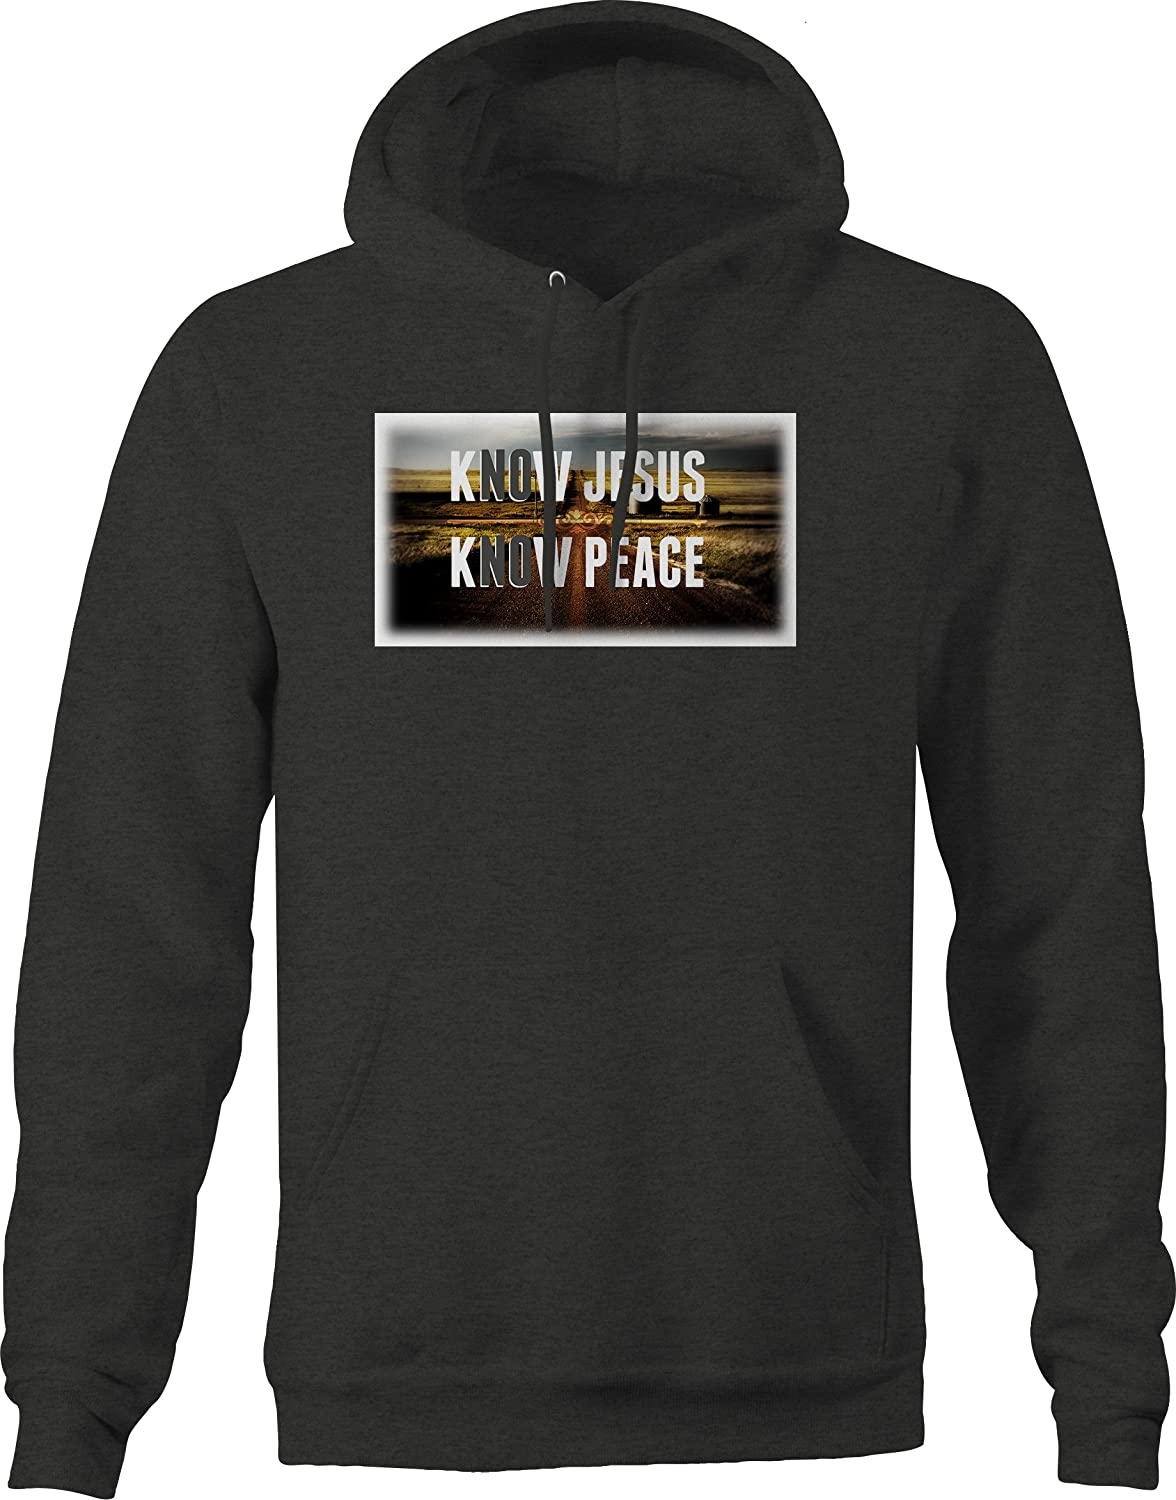 Know No Jesus Peace American Values Farm Country Graphic Hoodie for Men